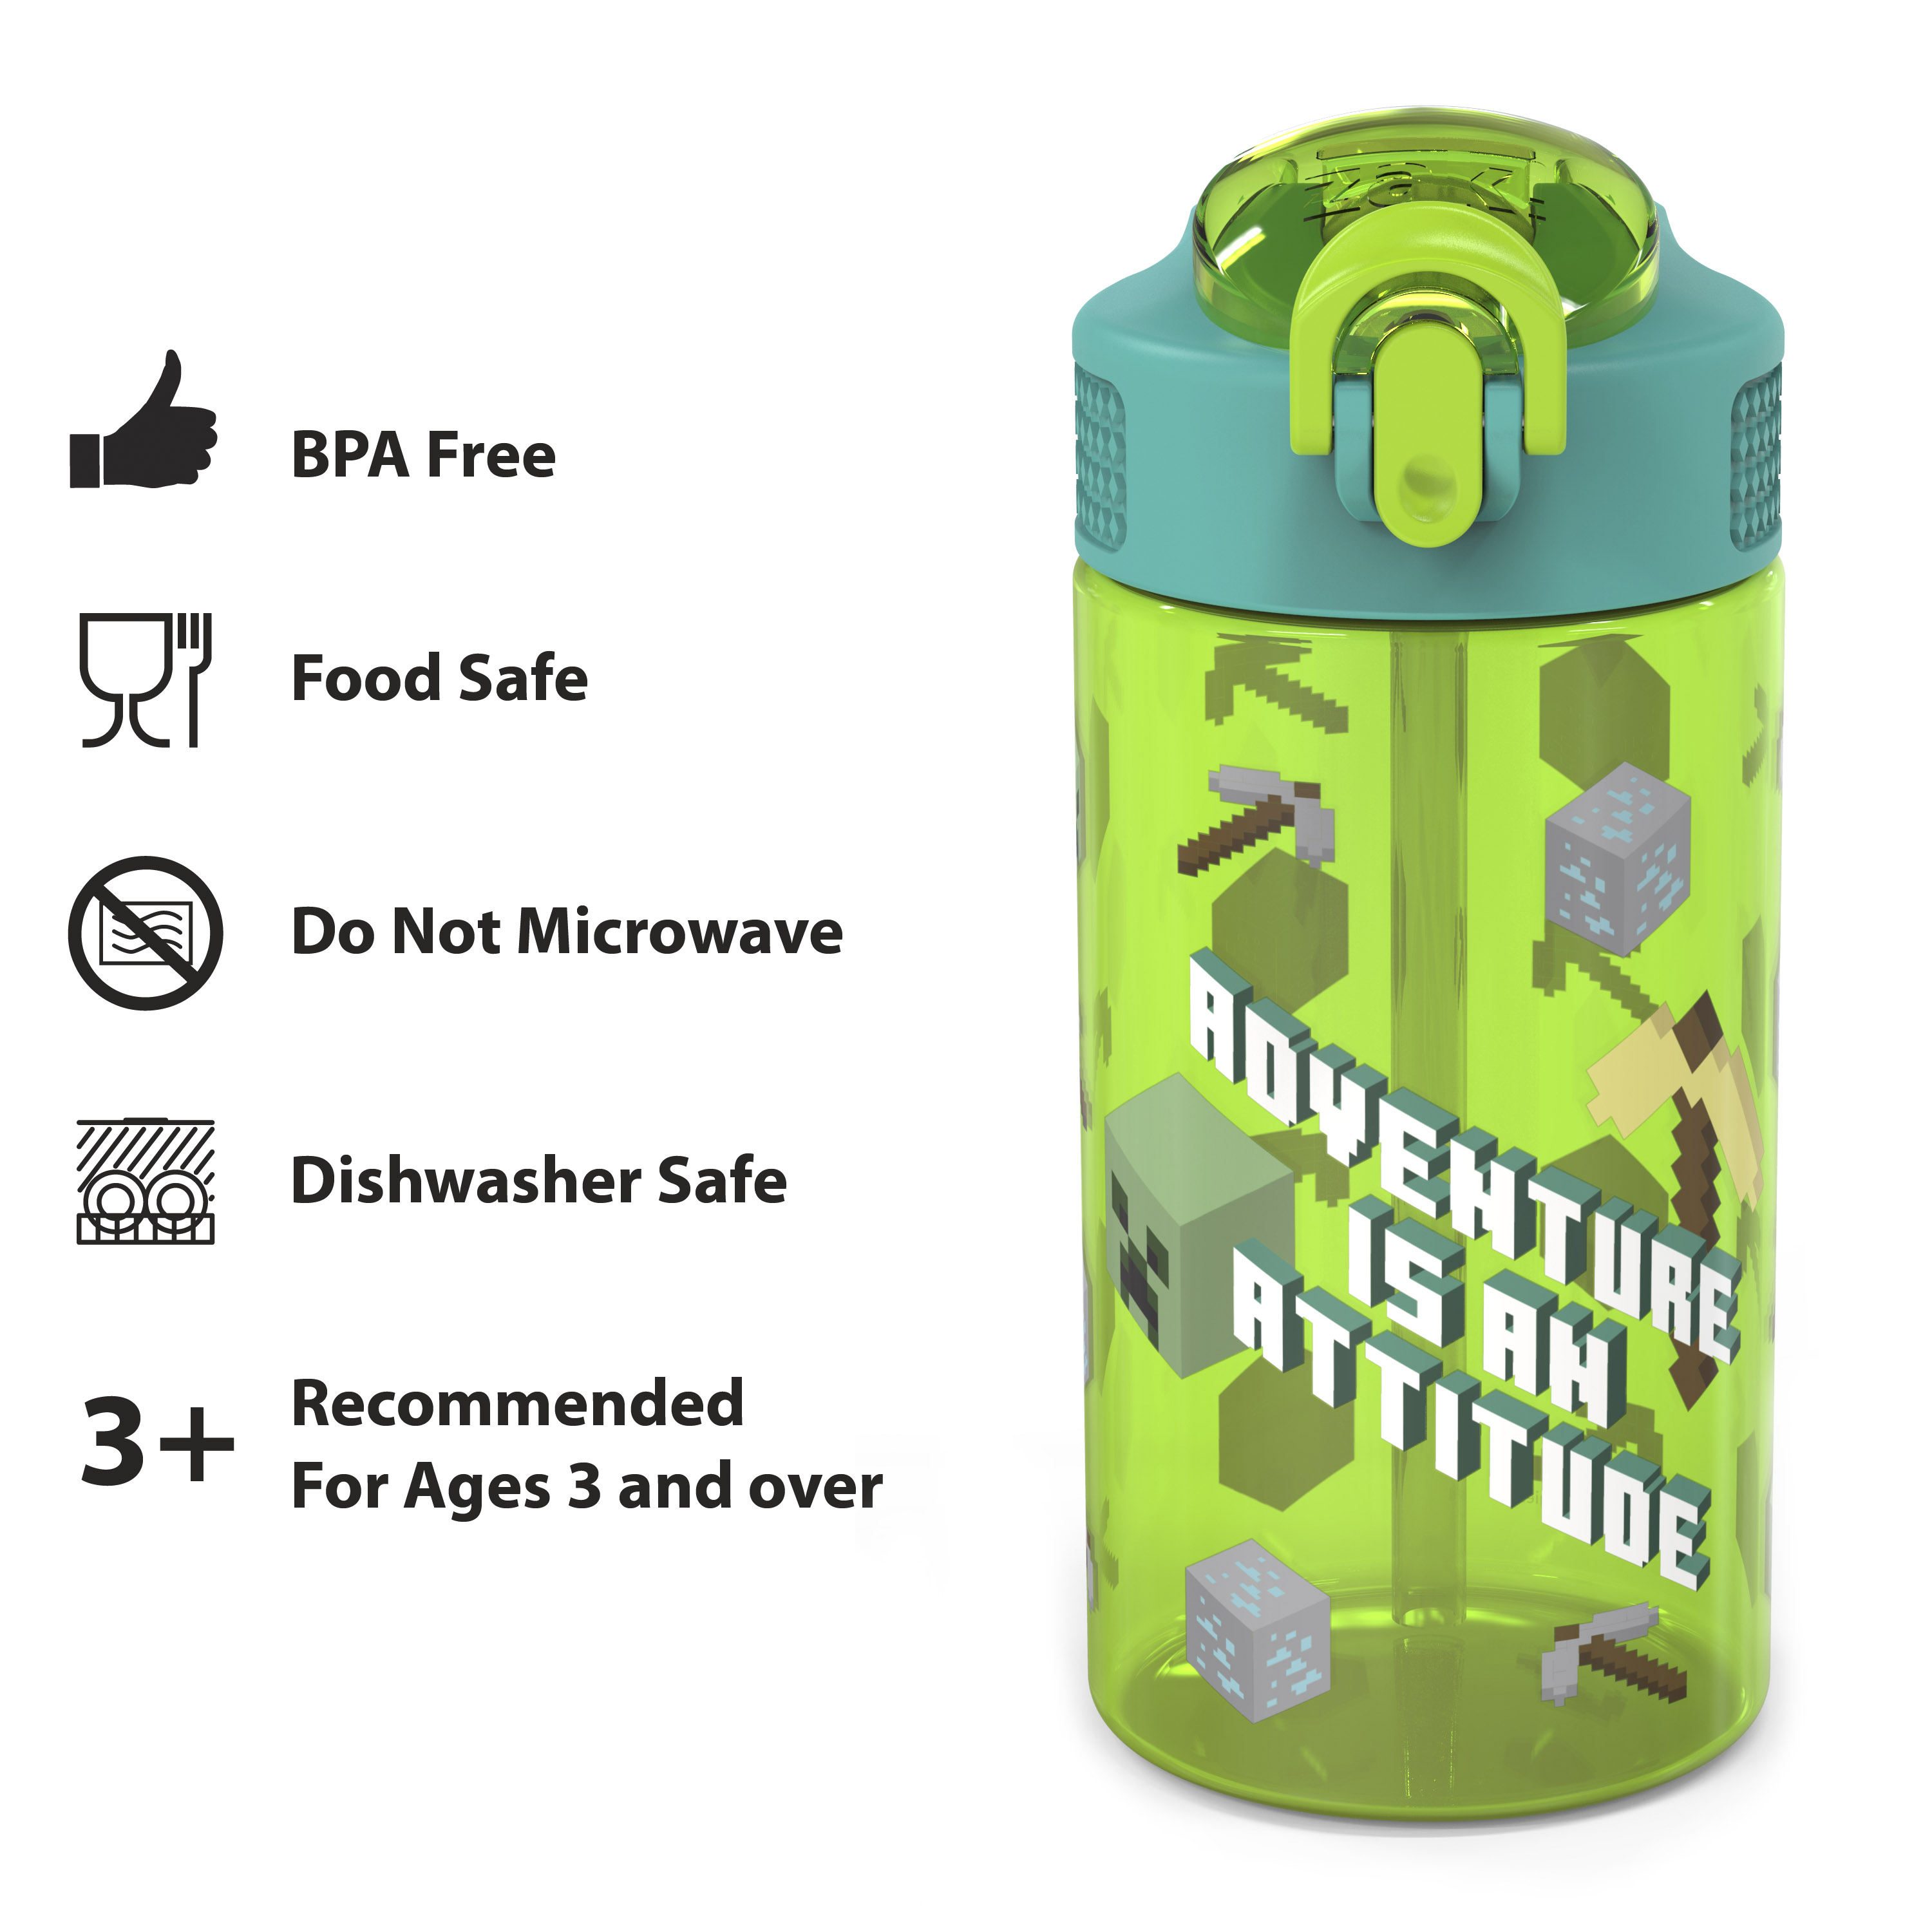 Minecraft 16 ounce Reusable Plastic Water Bottle with Straw, Creeper, 2-piece set slideshow image 5